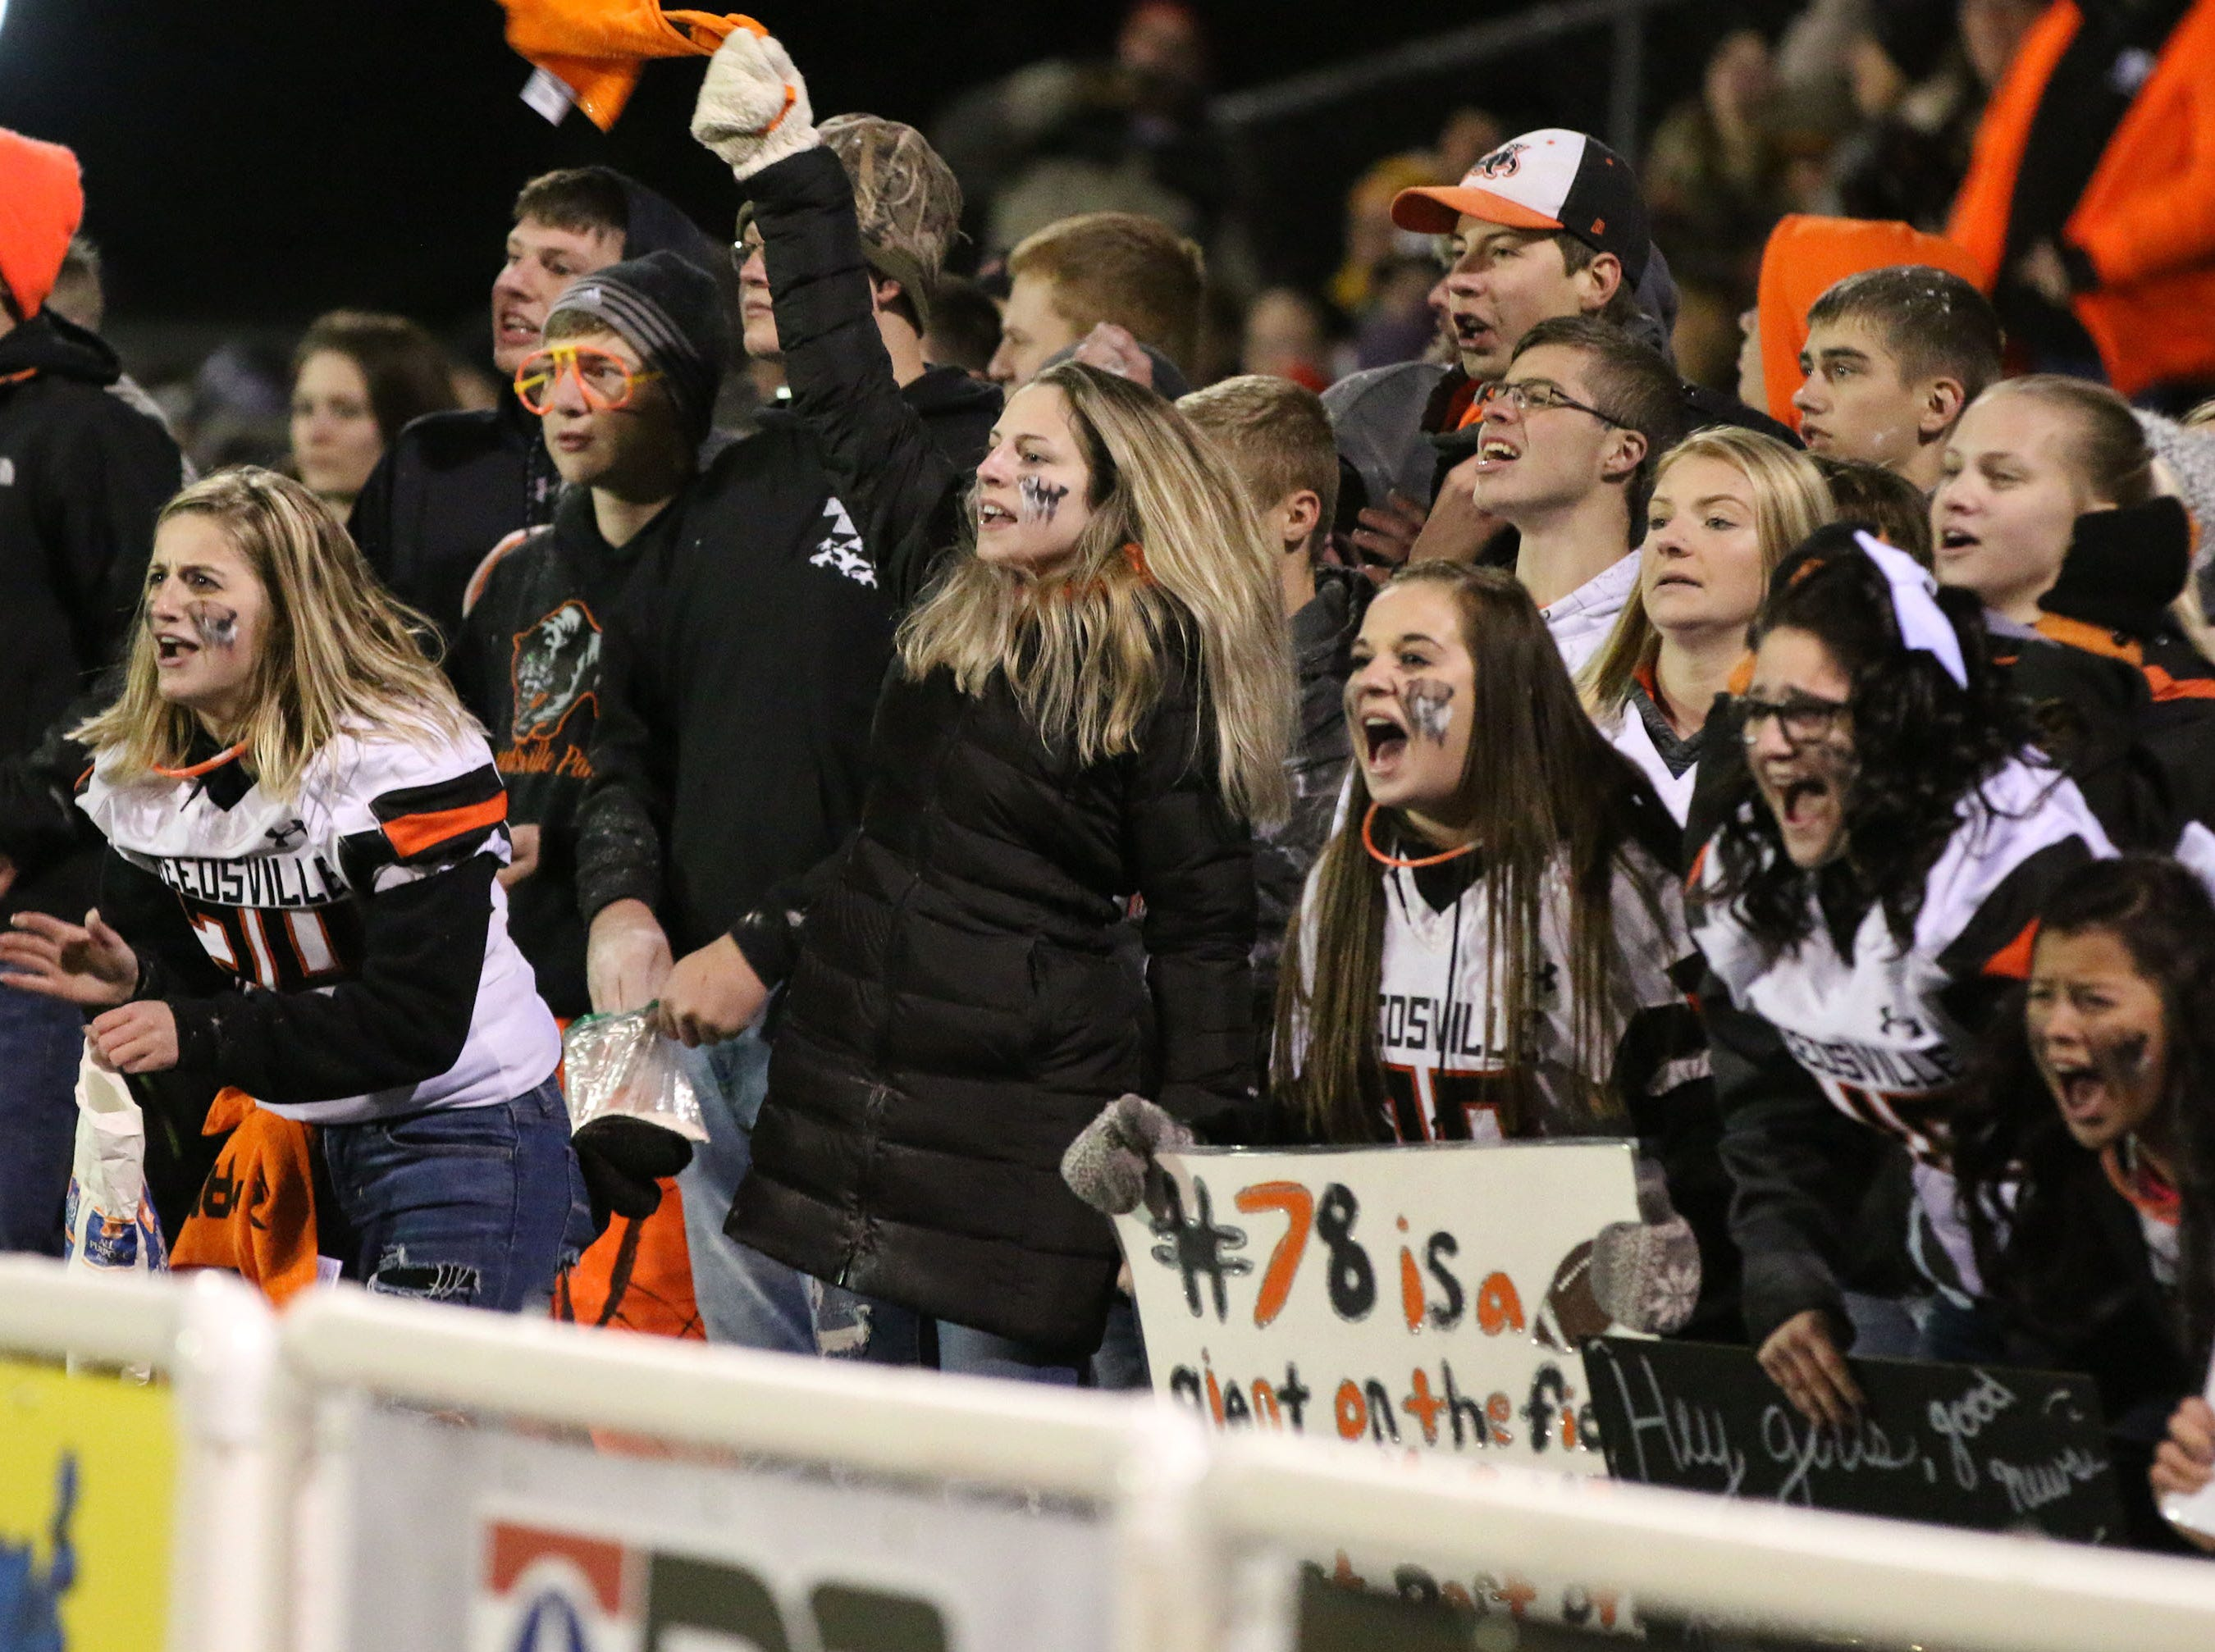 Reedsville fans are pumped up in final seconds against Pittsville, Friday, November 2, 2018, in Reedsville, Wis.